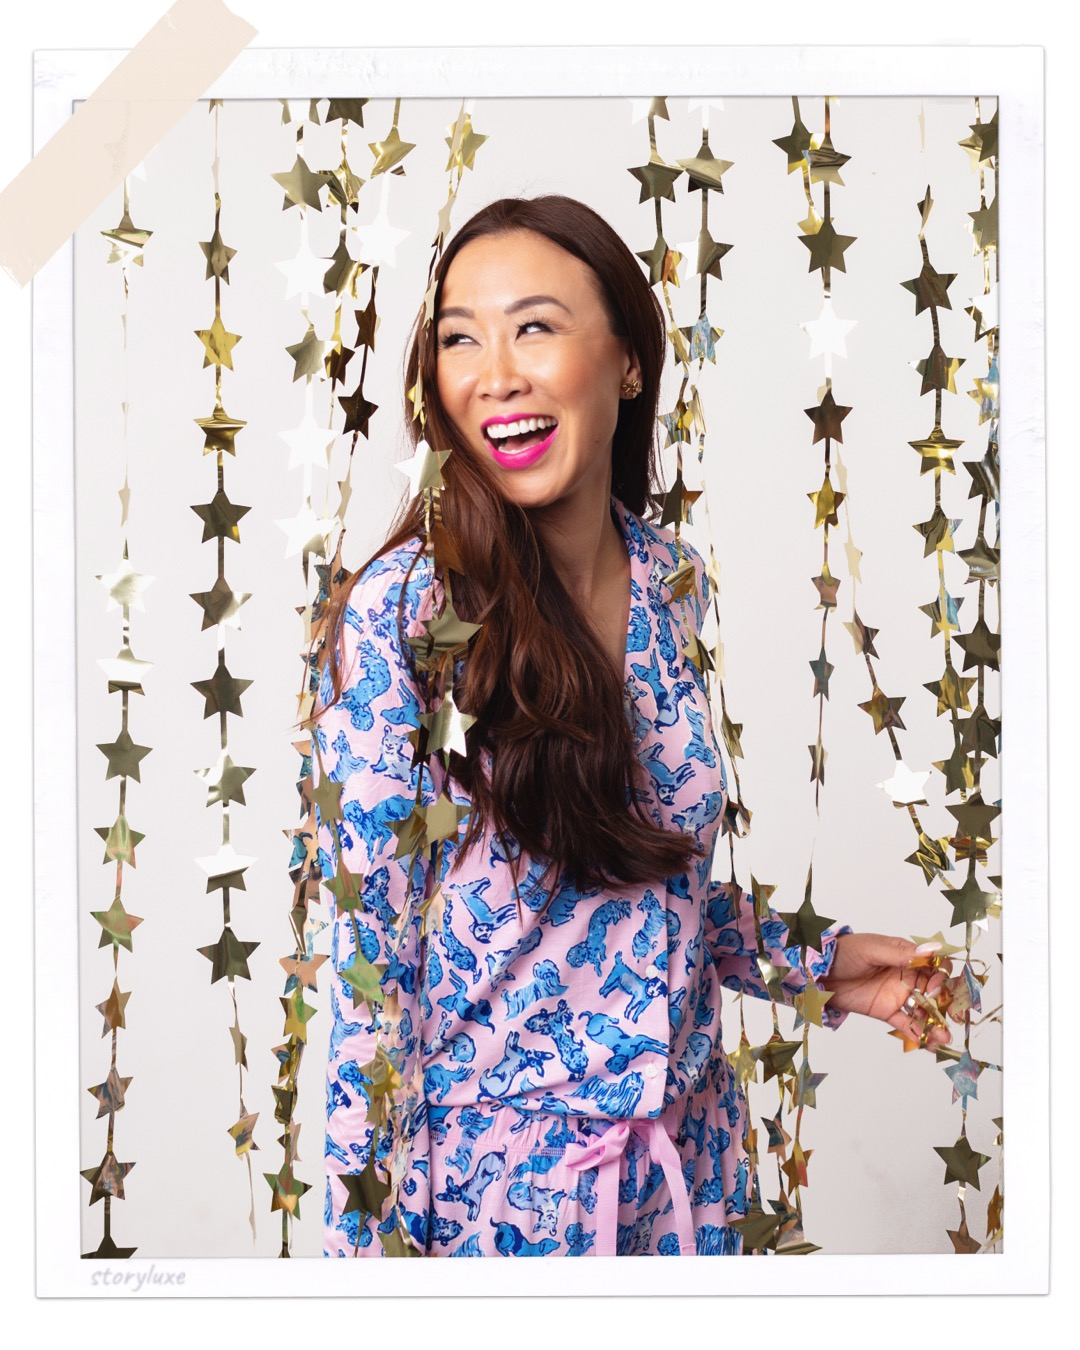 lifestyle fashions style blogger diana elizabeth in front of star curtains wearing doggie print Lilly Pulitzer pajamas